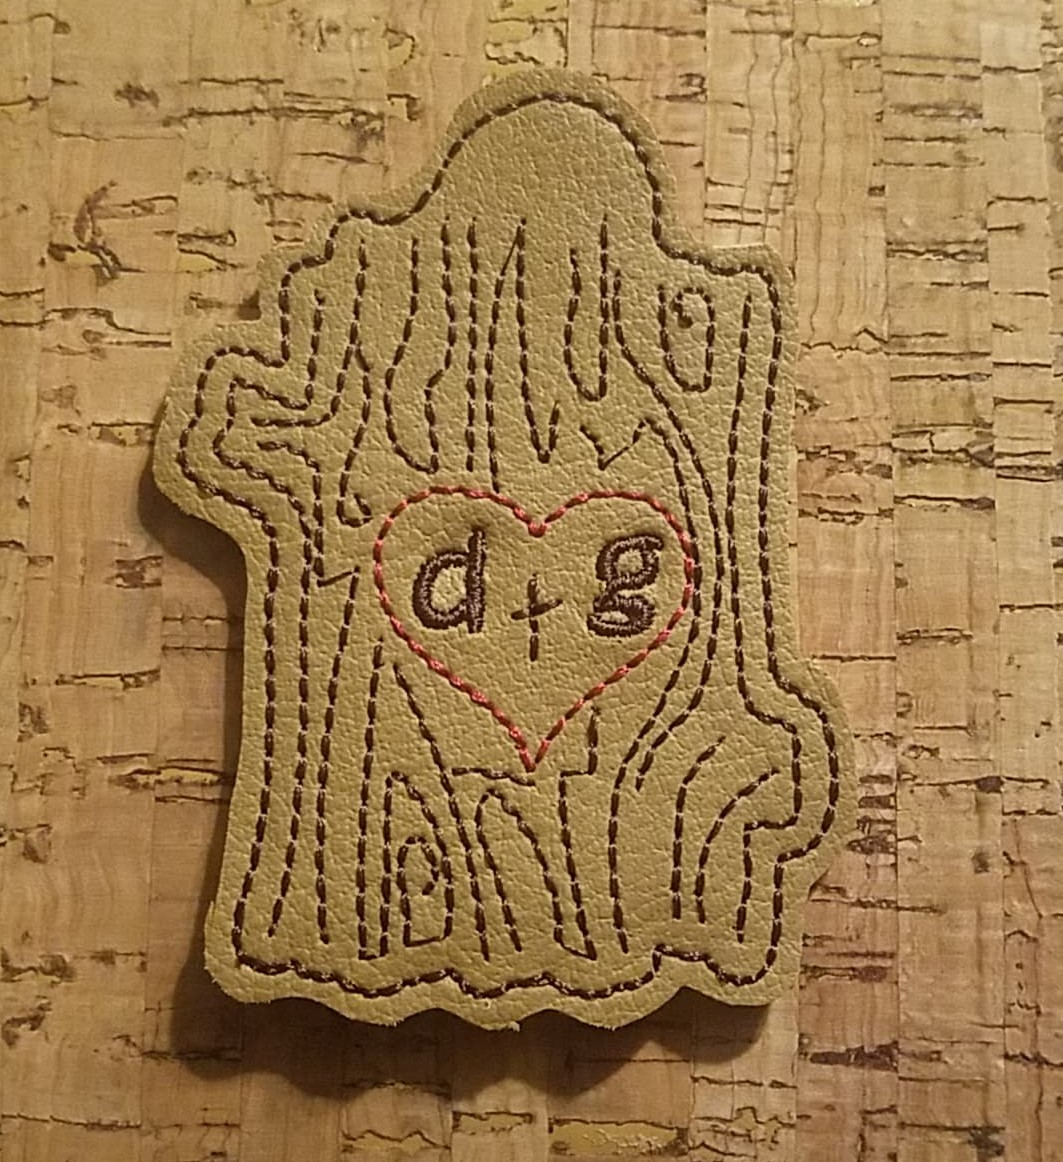 Tree Trunk Love Snaptab / Keyfob Embroidery Design